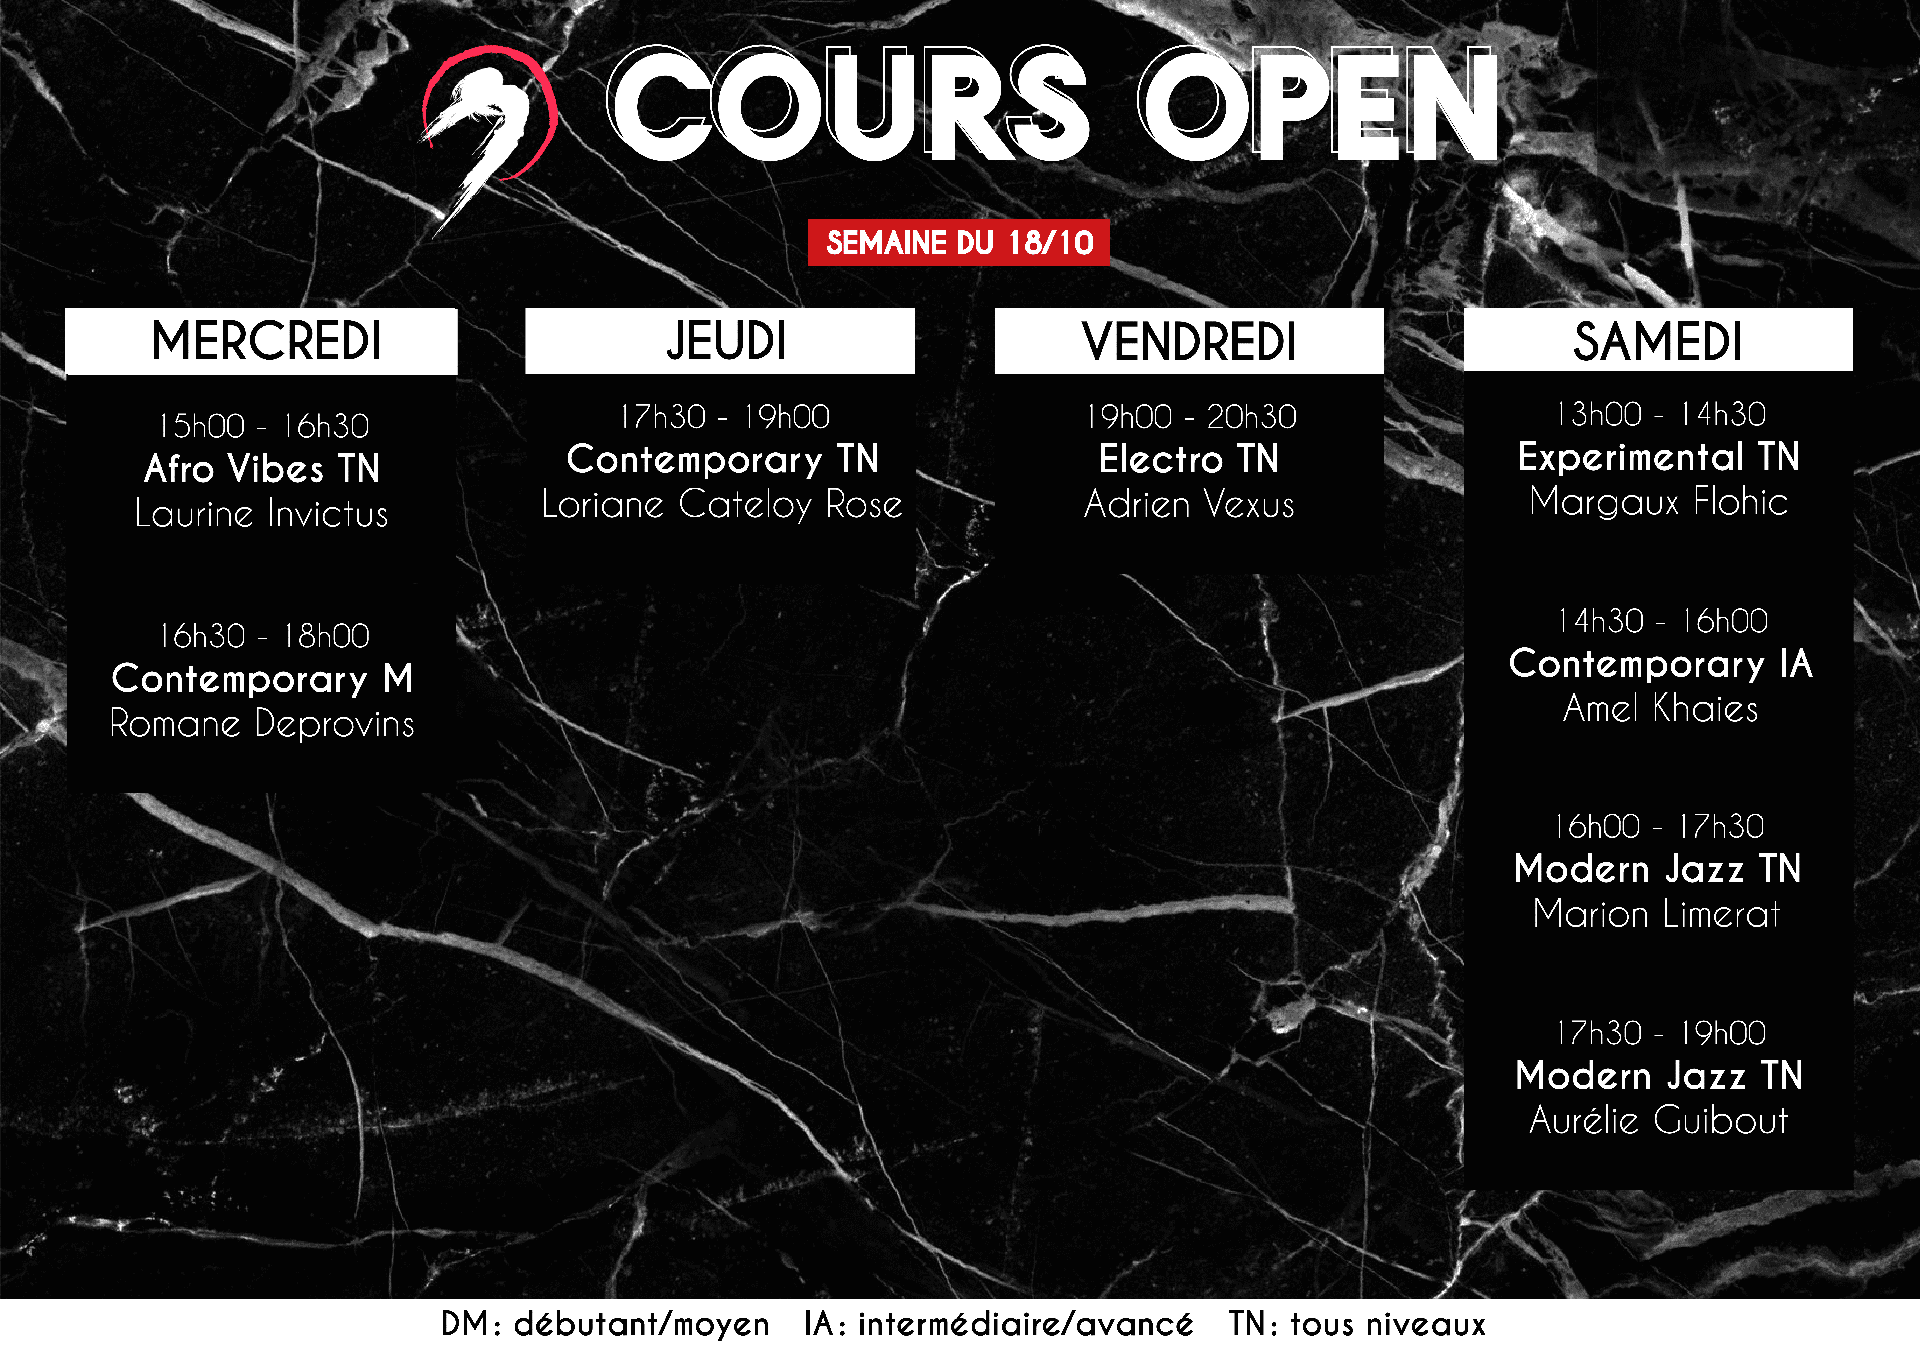 Planning semaine 18 Octobre Cours Open Neodance Academy (1)